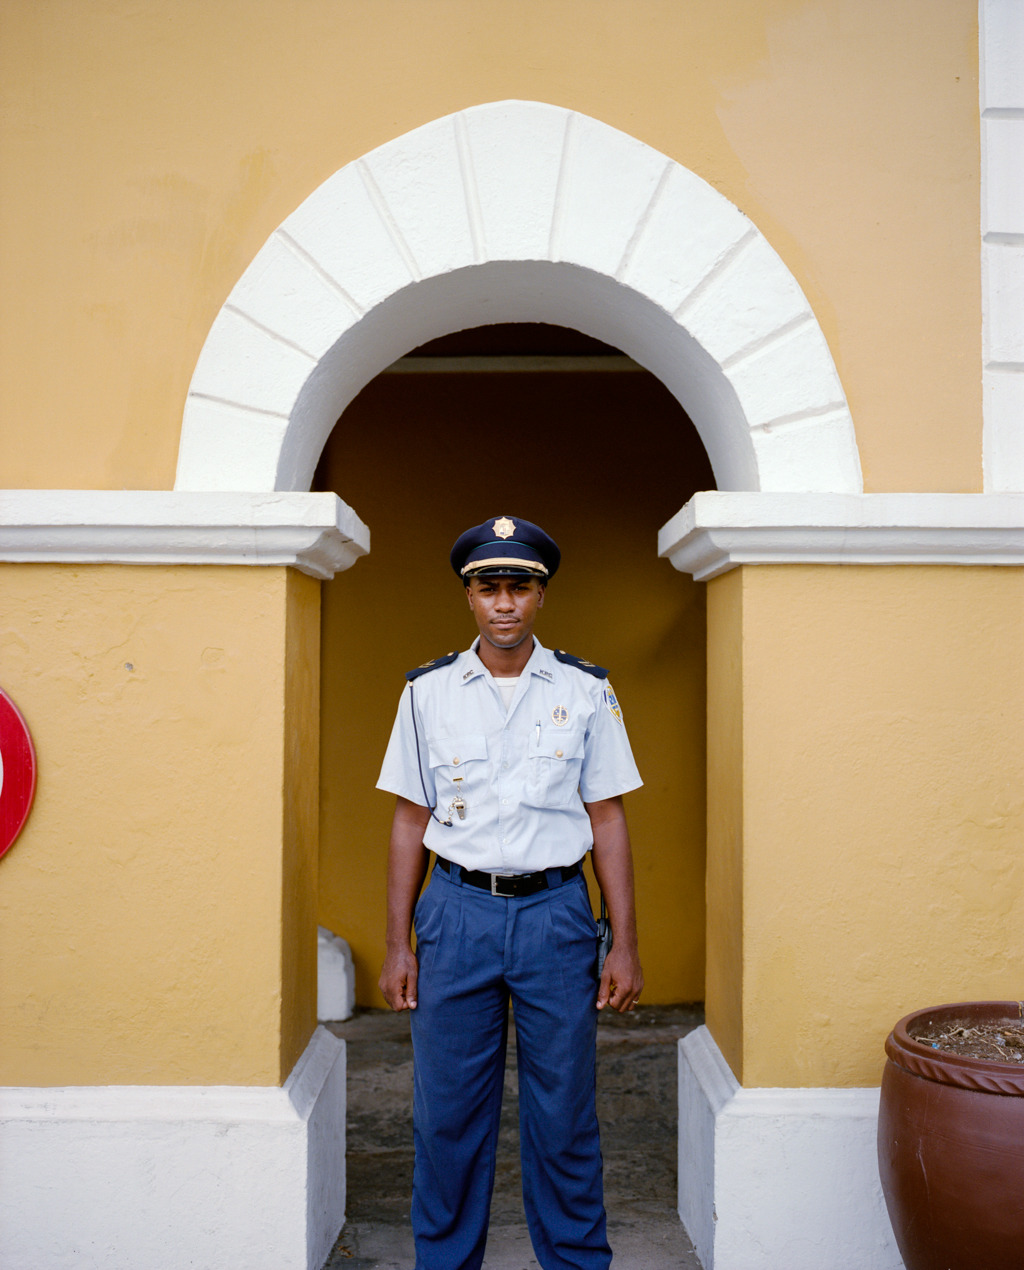 A young guard standing to attention (kinda) in front of the Governor's palace in Willemstad, Curaçao. Shot for enRoute magazine's February issue. Look for a full gallery of this assignment on my website in the coming days.